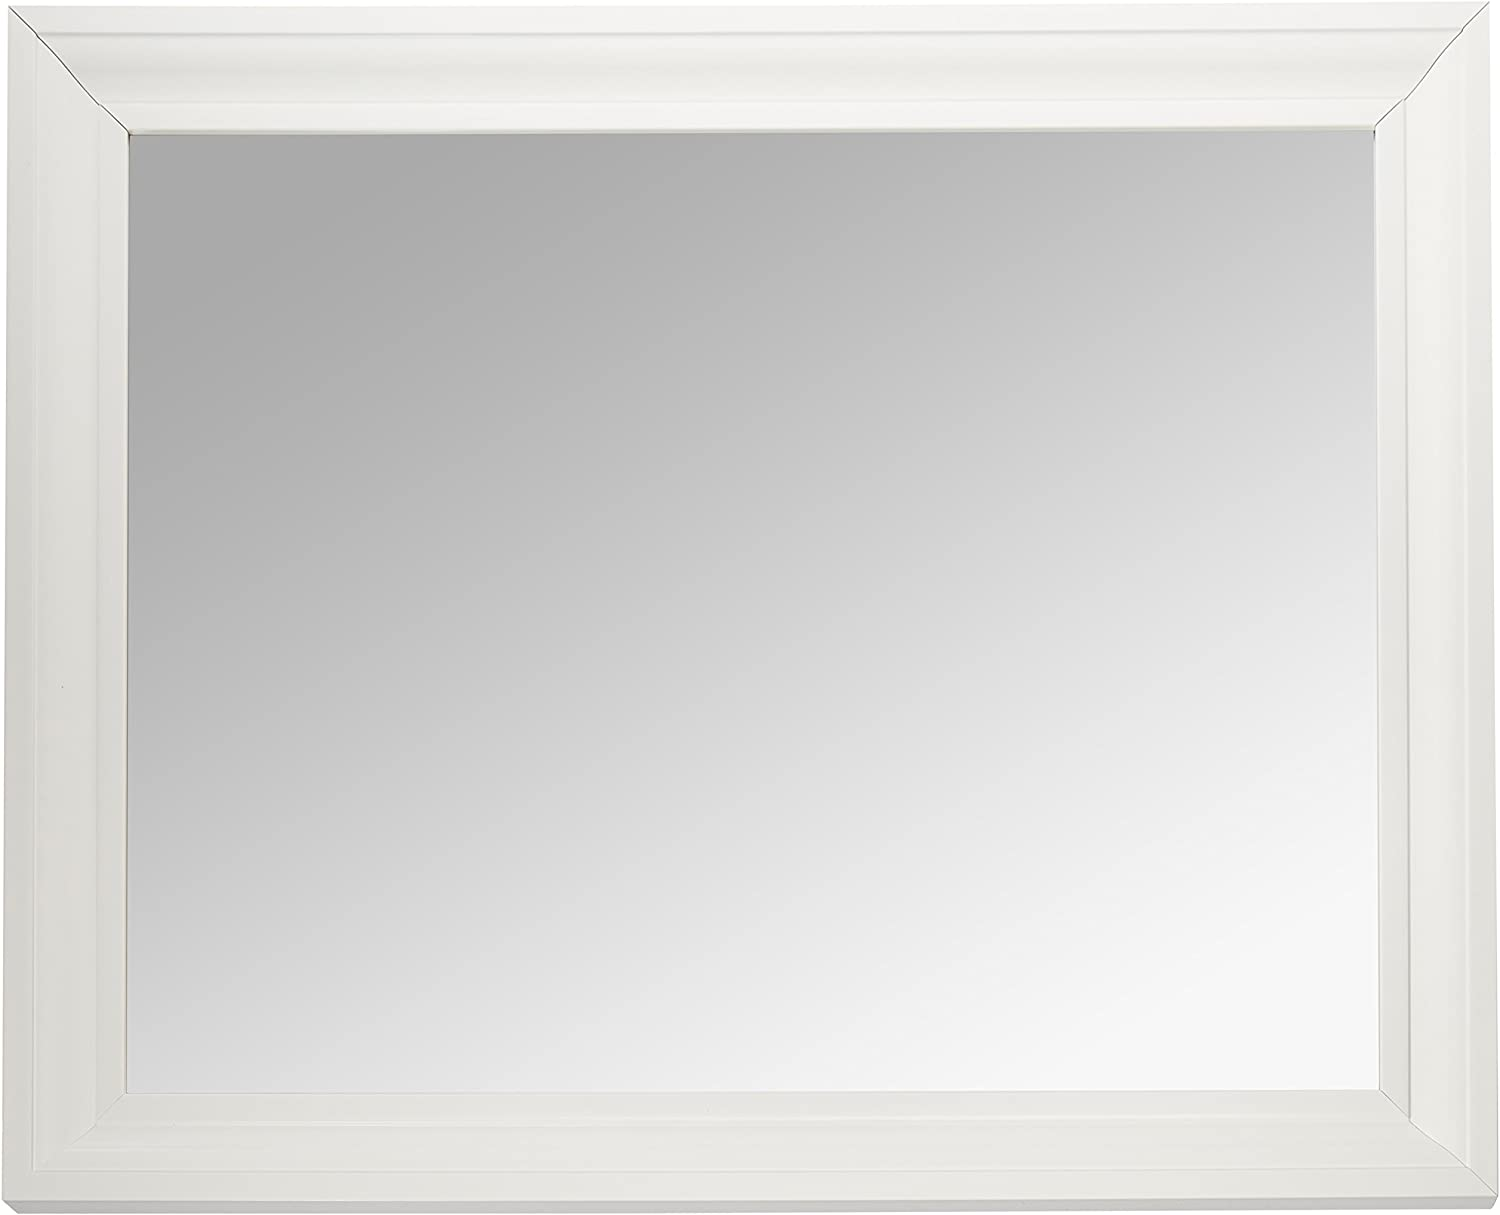 Amazon Com Mcs 21 5x27 5 Inch Rectangular Wall Mirror 26 5x32 5 Inch Overall Size White 20453 Home Kitchen